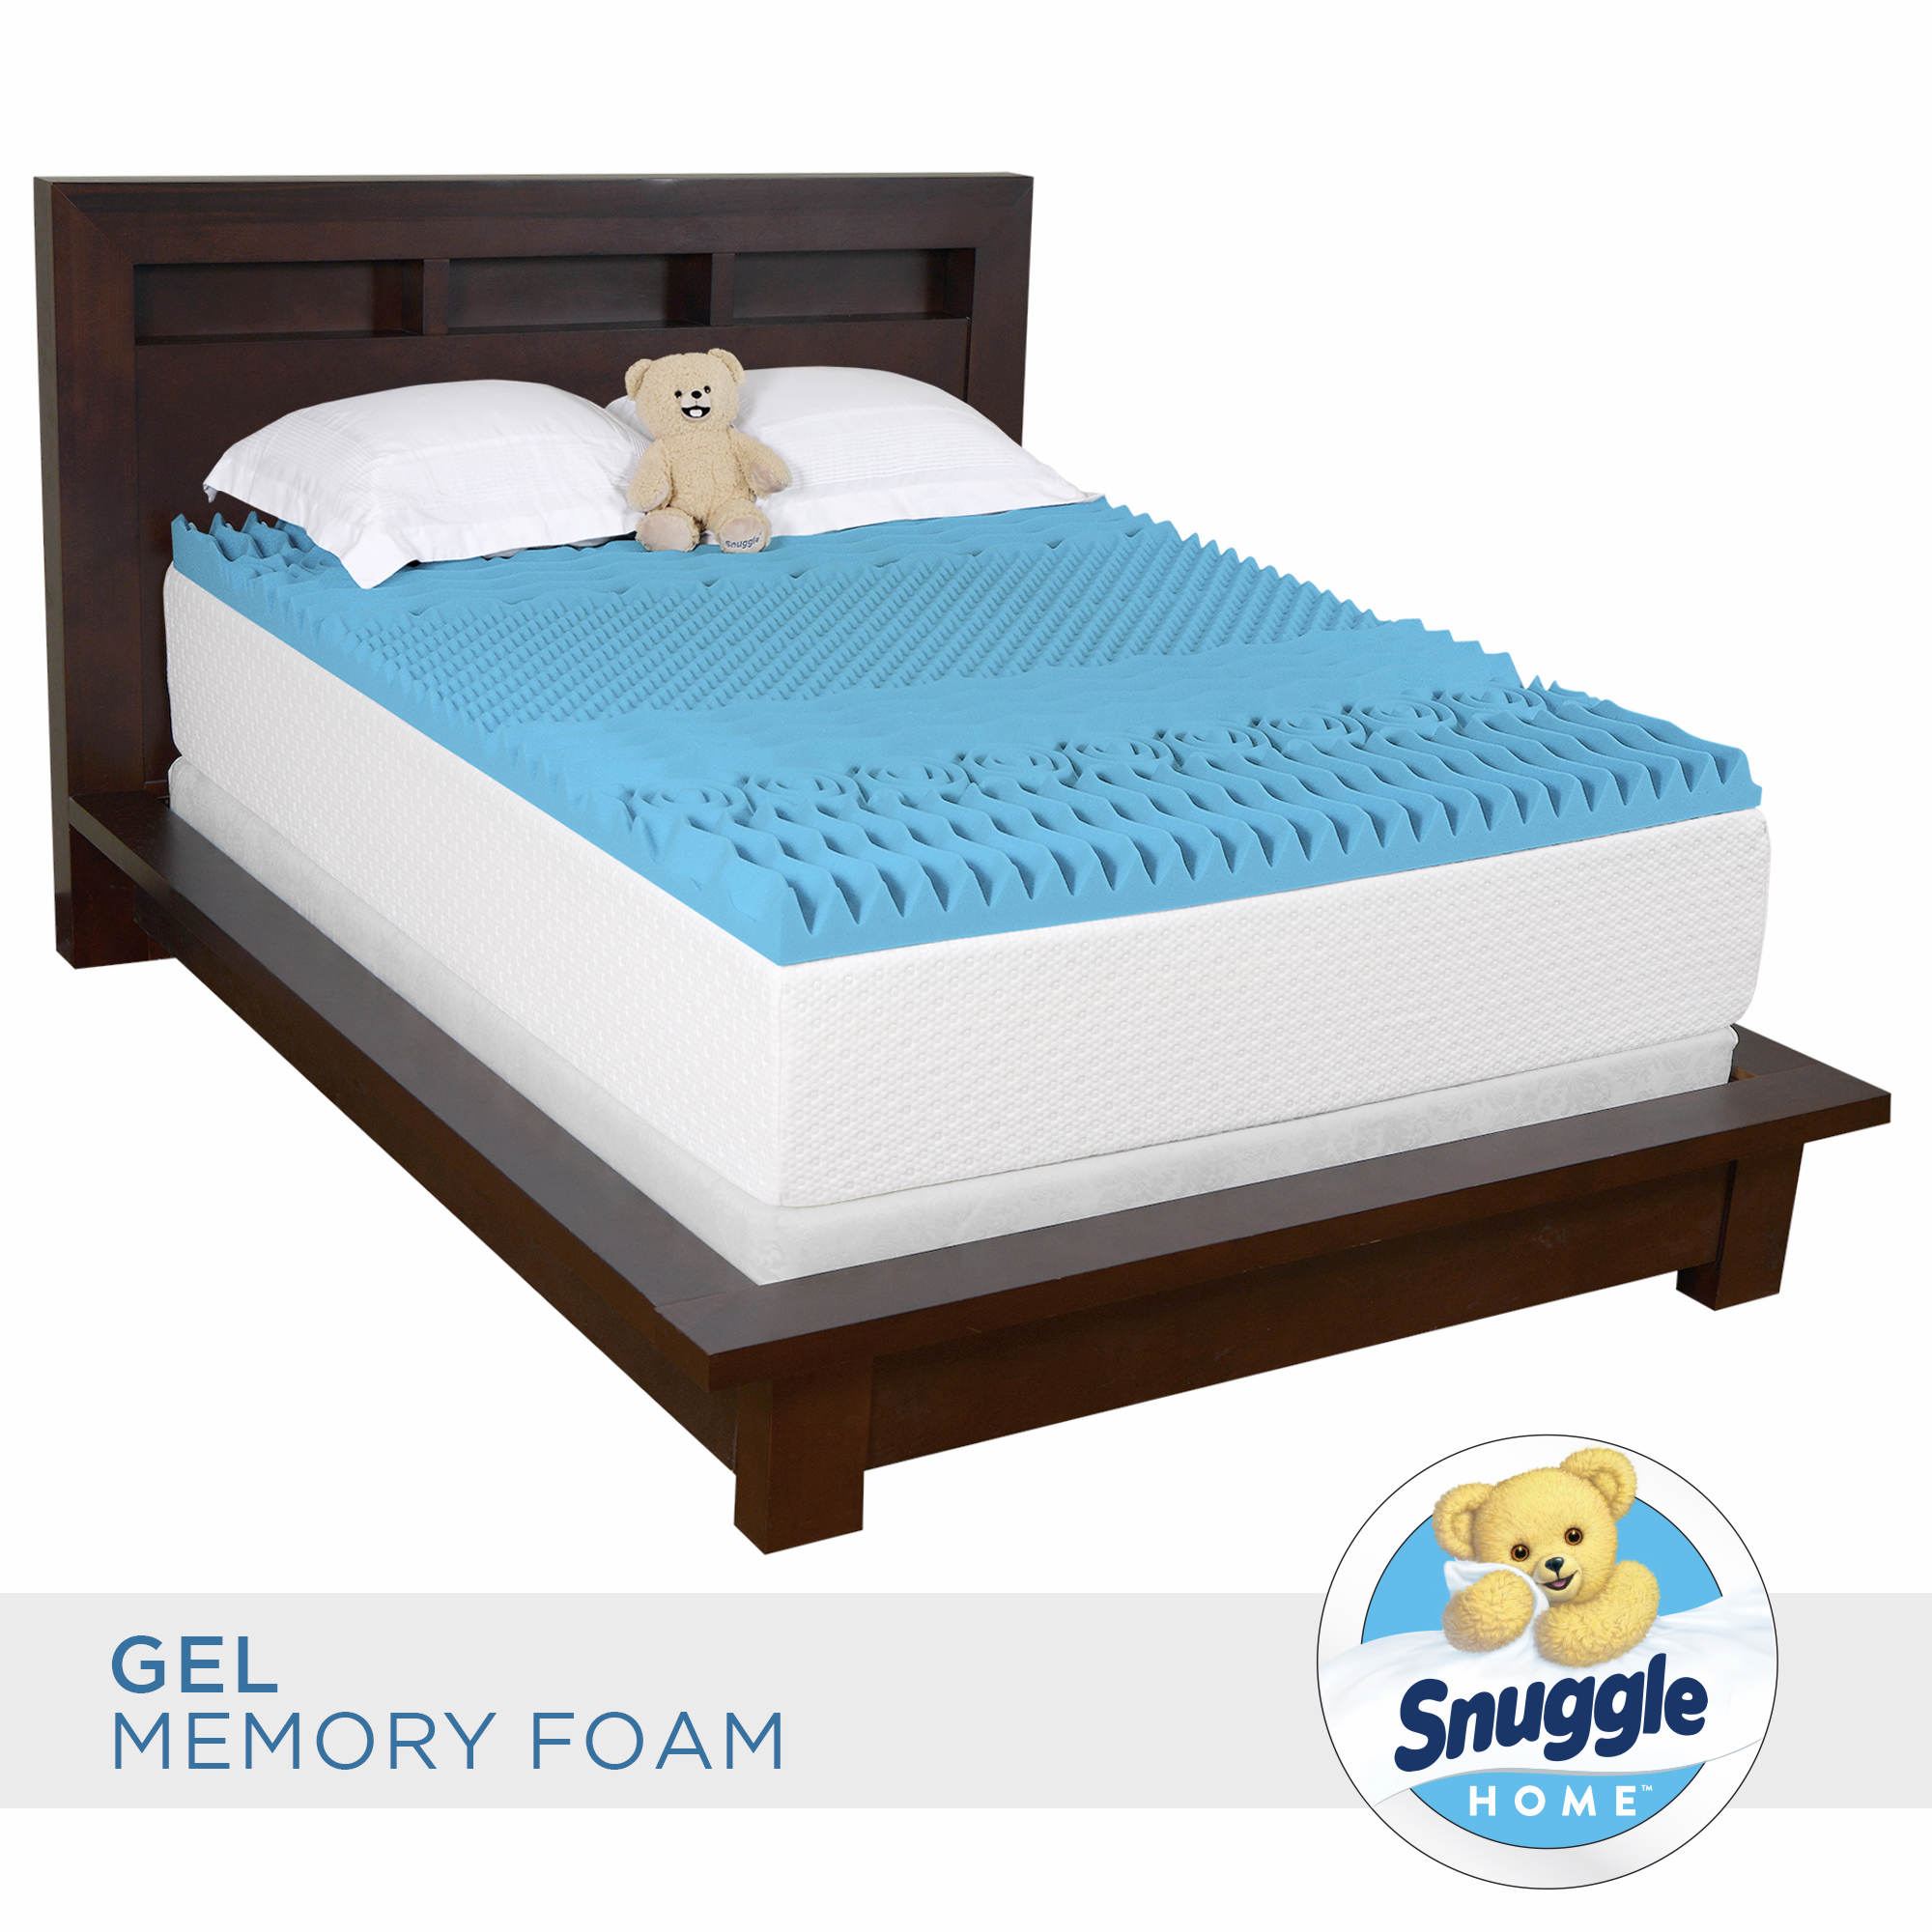 Snuggle Home Queen Size 3 Gel Memory Foam 7 Zone Mattress Topper With Skirted Cover Bj 39 S